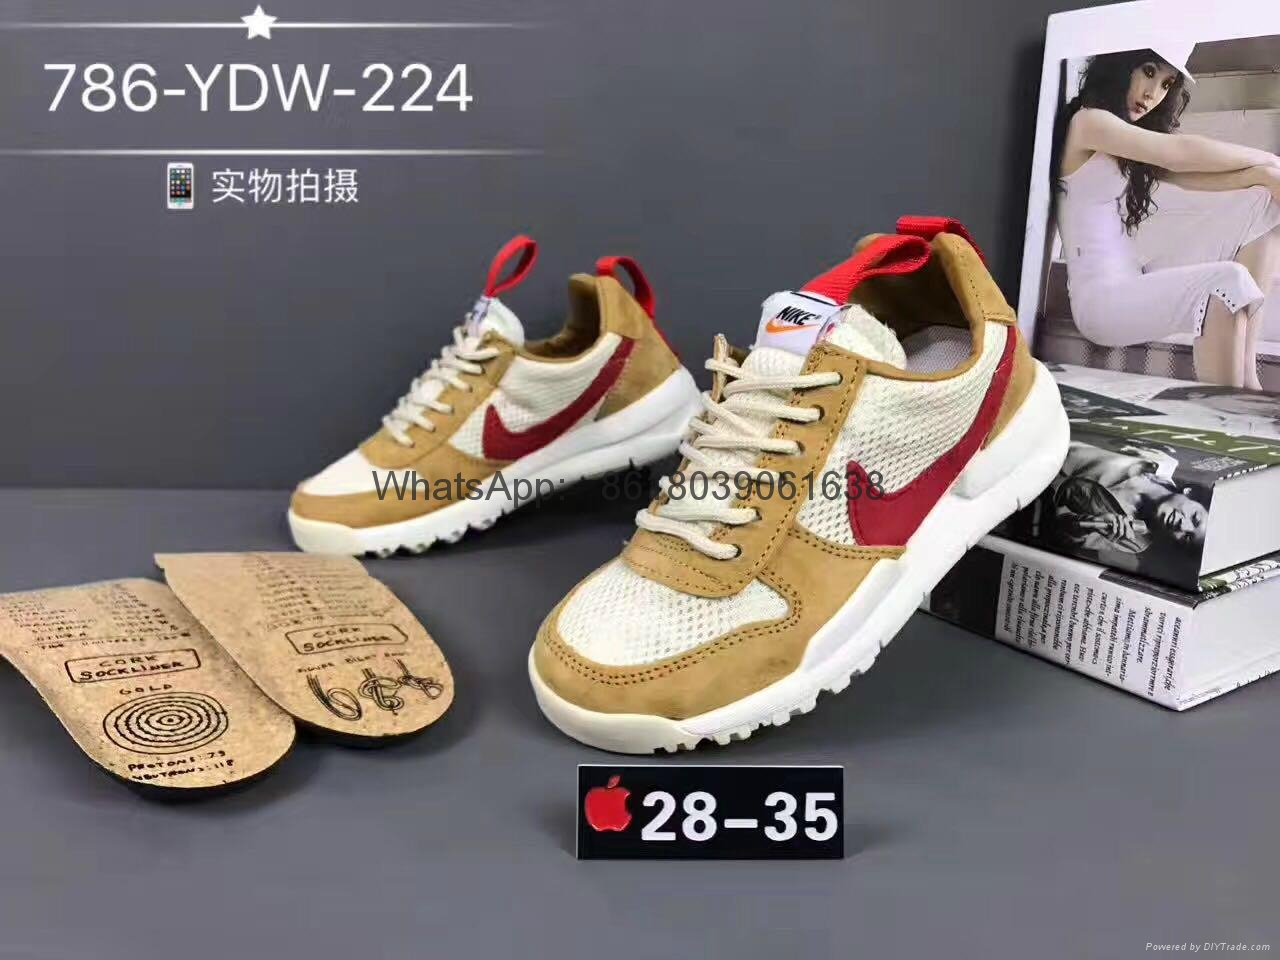 2018 kids shoes adidas kids shoes nike childs shoes new balance SKECHERS shoes 8